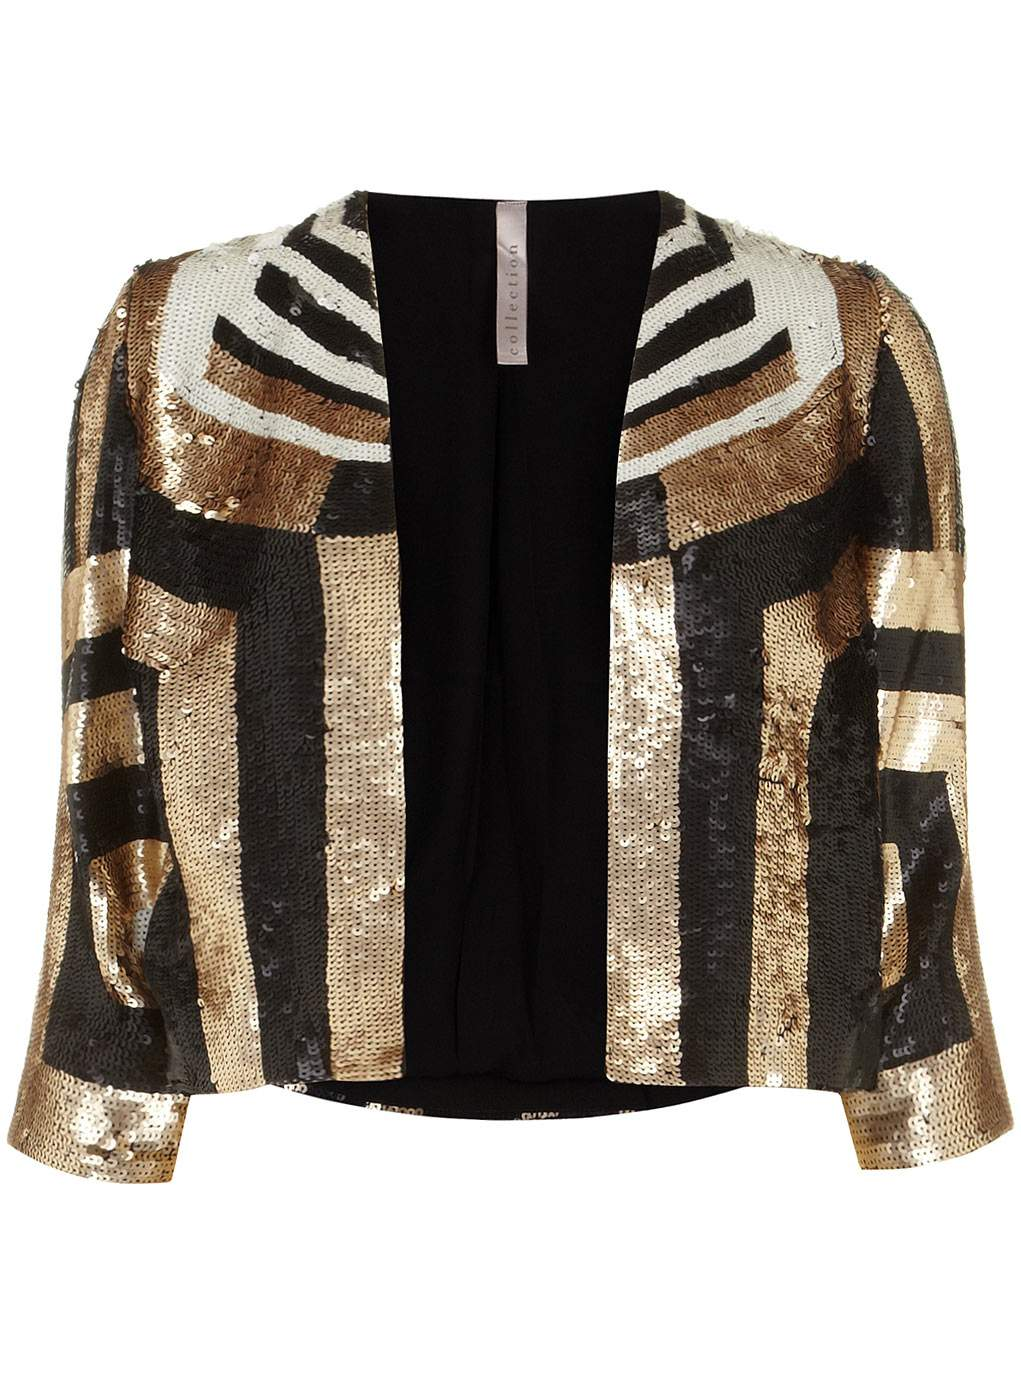 Gotta Have It: This Plus Size Sequins Bolero from Evans